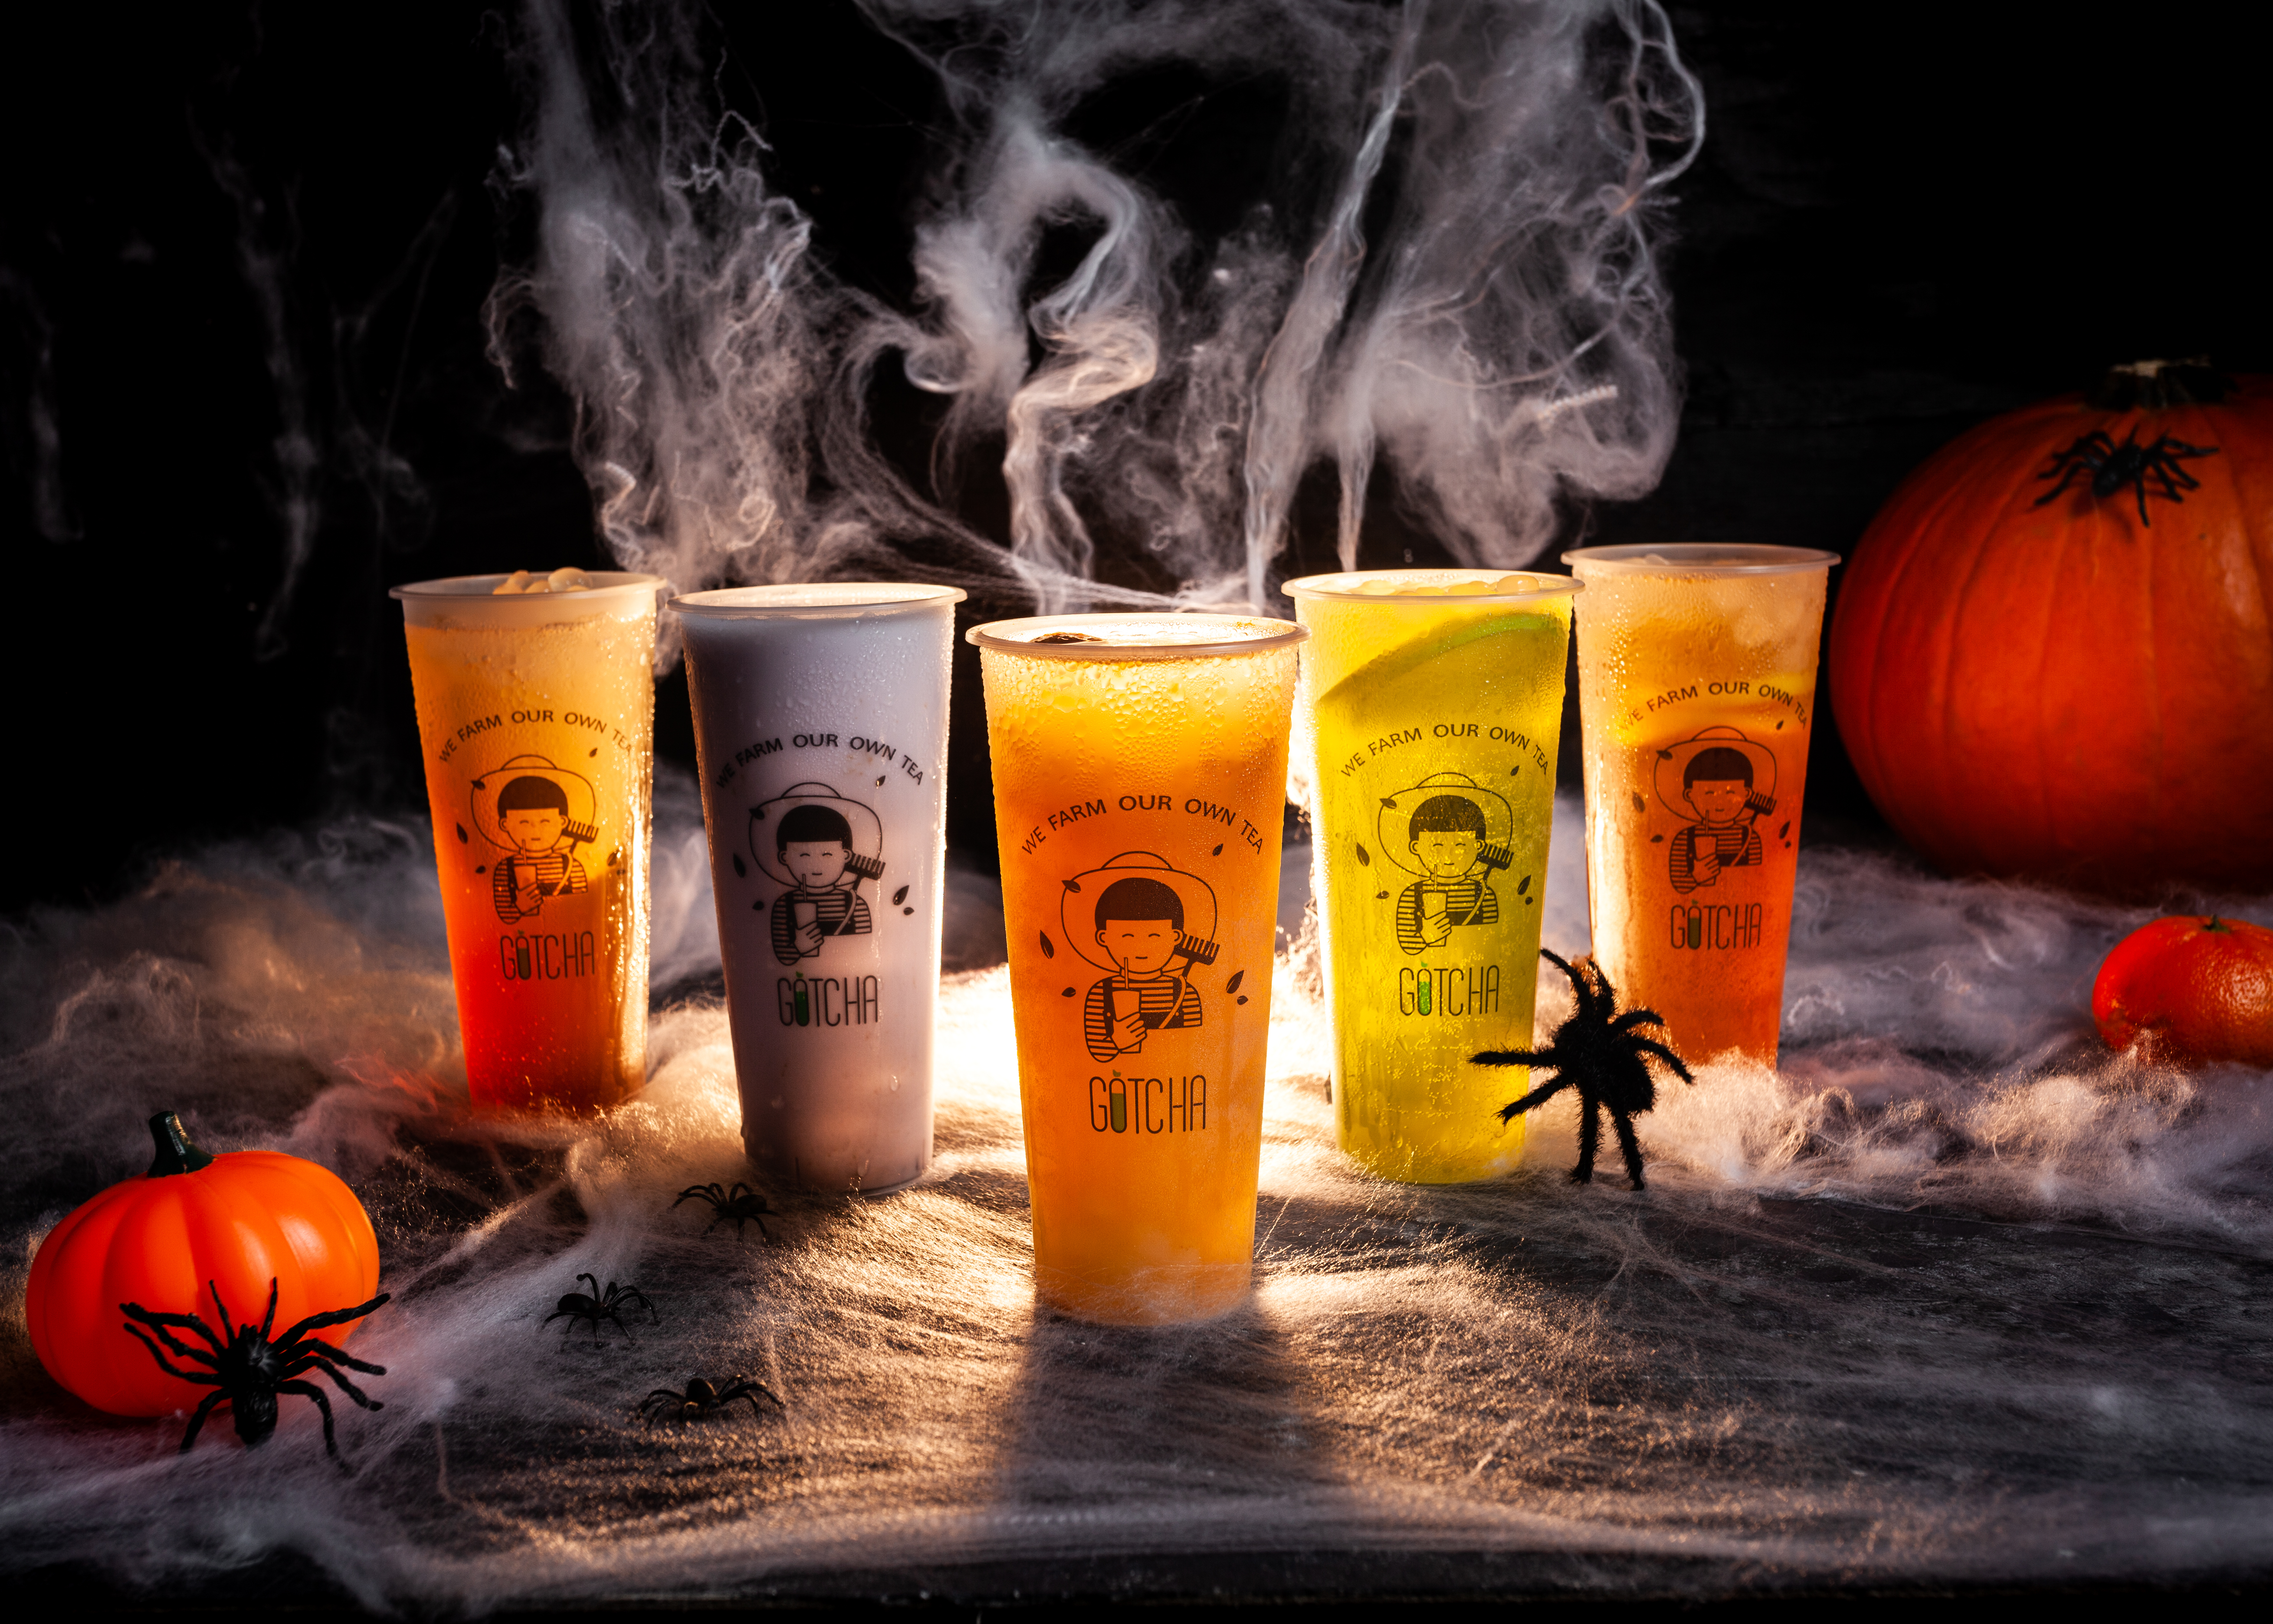 Celebrate This Spooky Season With Gotcha And Their Limited Edition Halloween Collection!